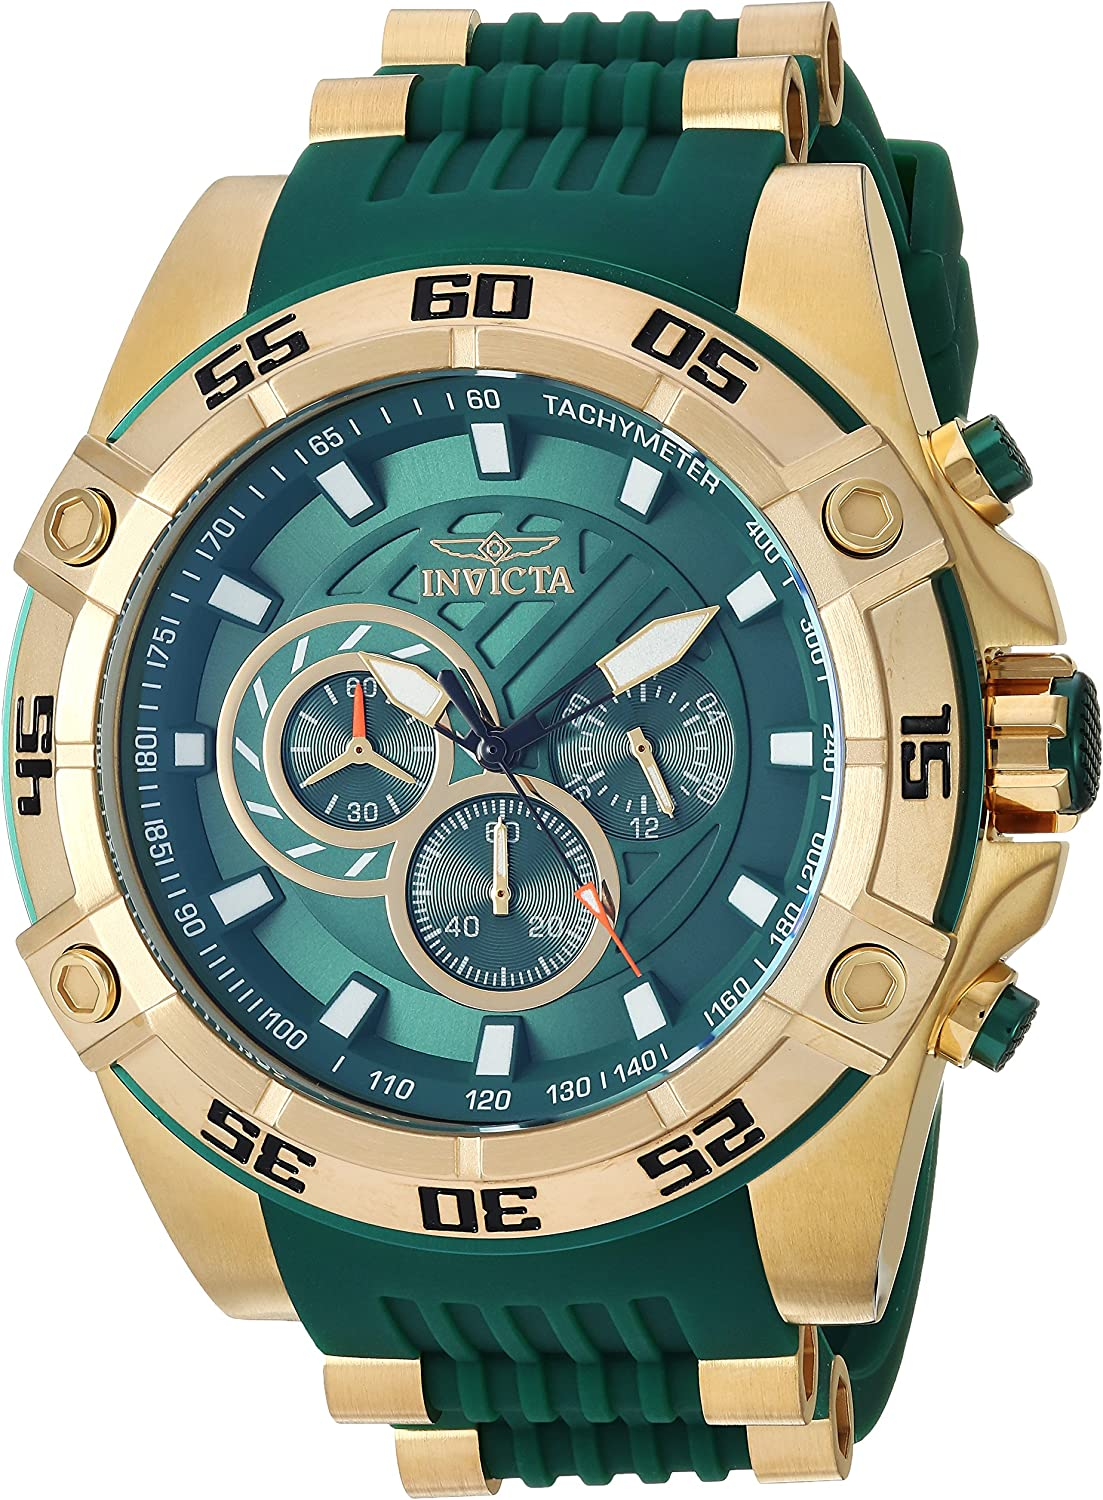 Invicta Men s Speedway Stainless Steel Quartz Watch with Silicone Strap, Green, 27 Model 25509